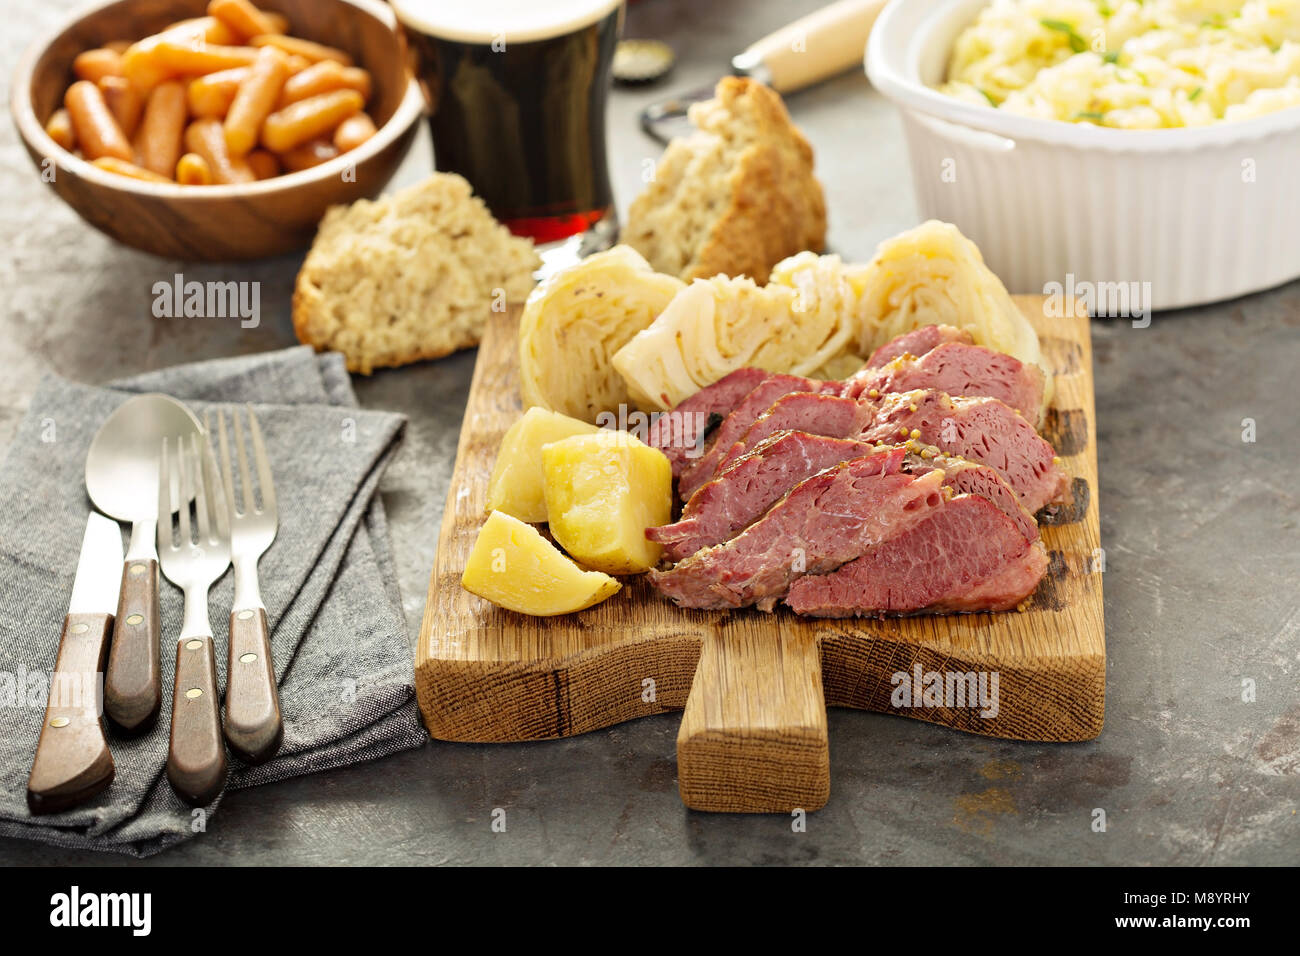 Corned beef and cabbage - Stock Image